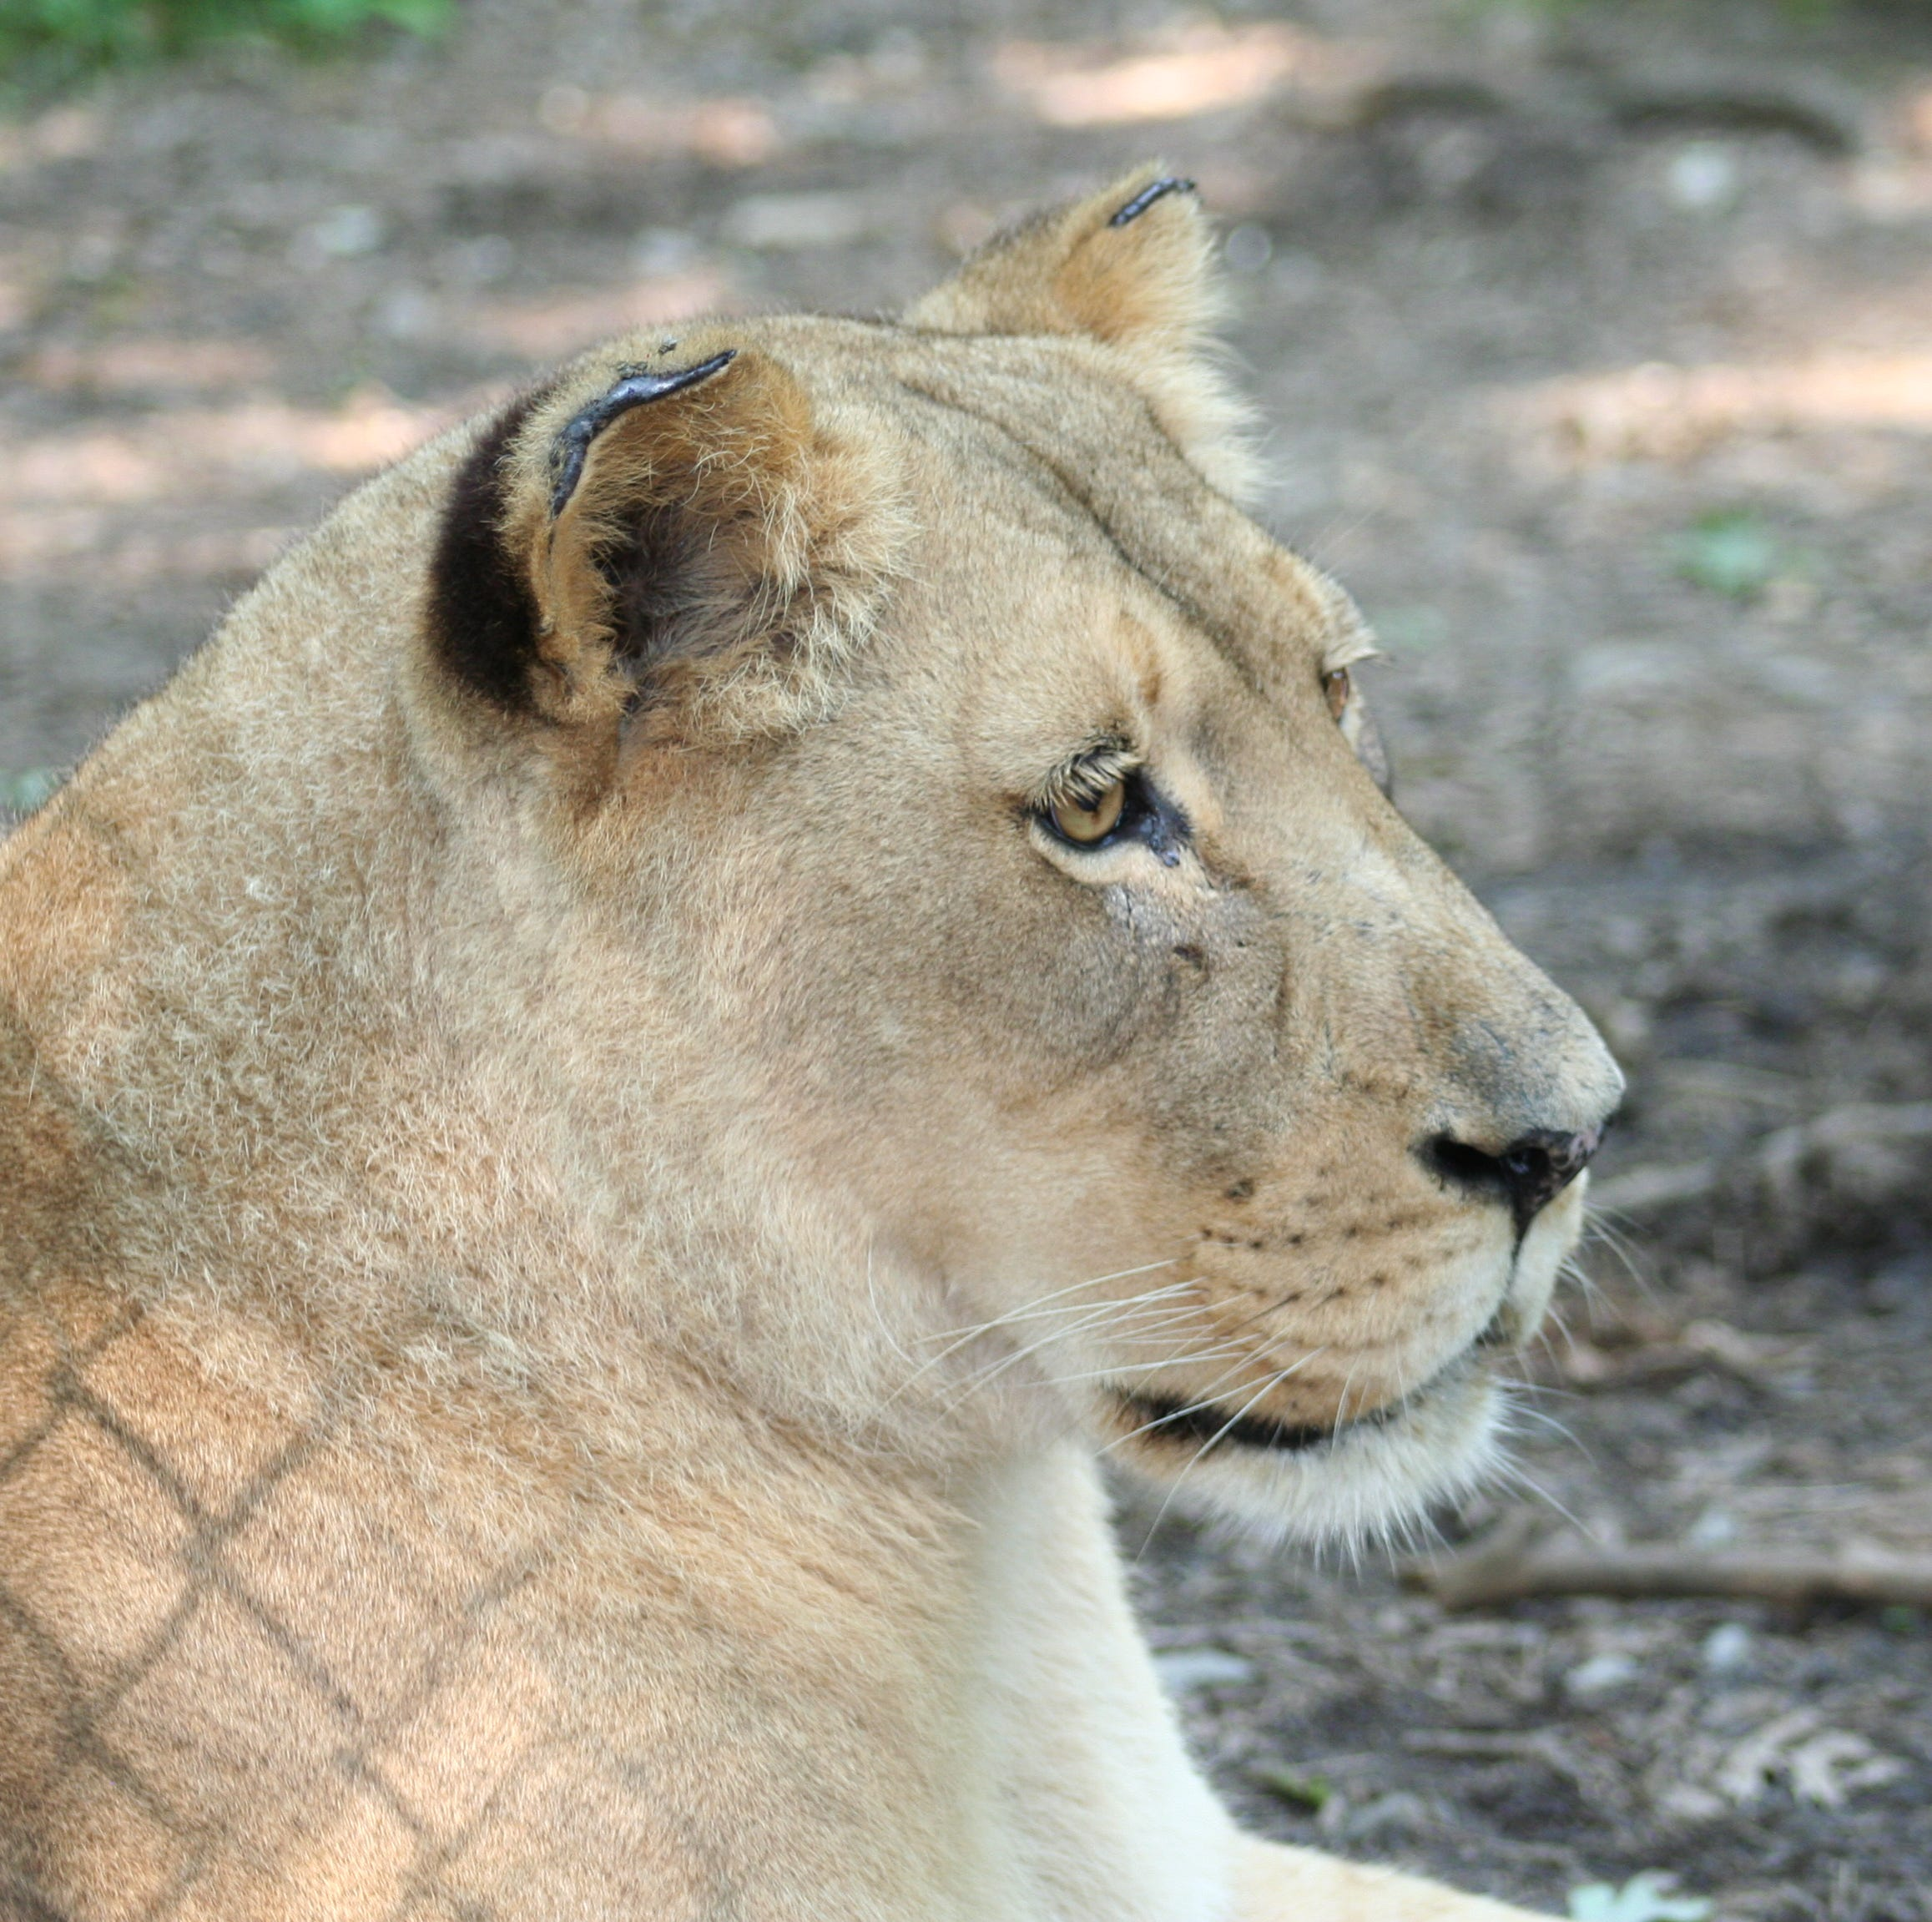 Zoo Knoxville announces death of 23-year-old African lion Sylvan